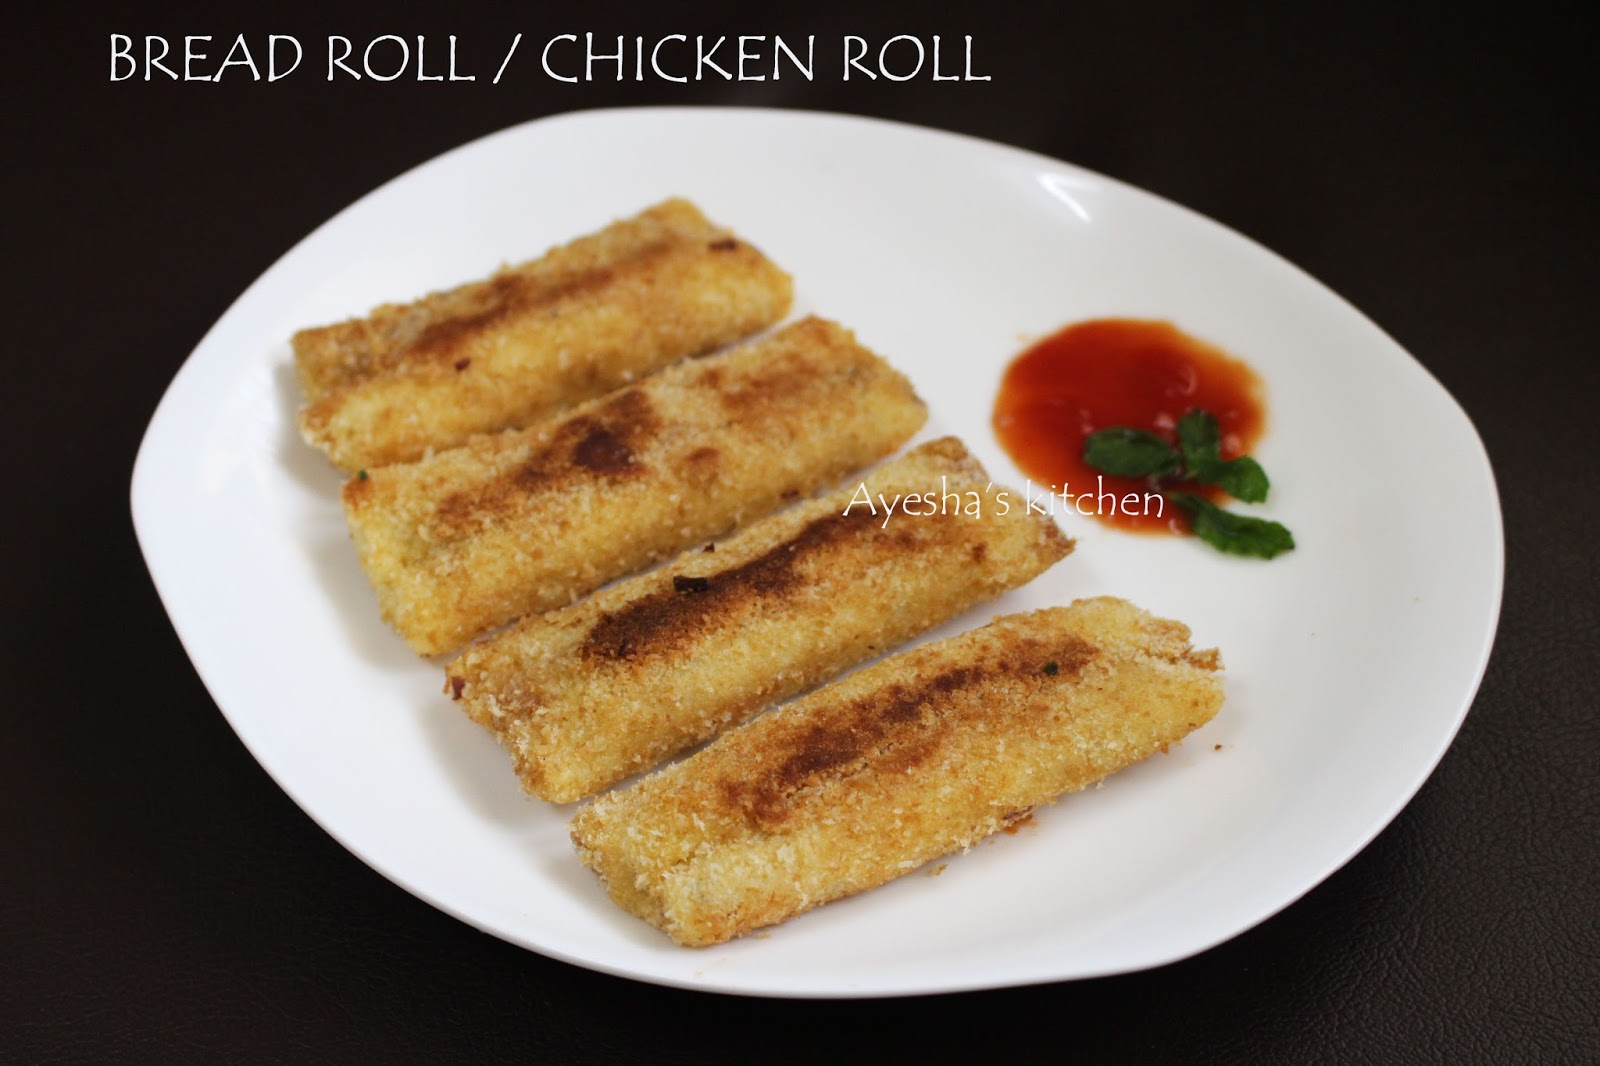 Other Bread Snacks Recipes Garlic Toast Medu Vada Sweet Lasagna Finger Sandwich Pizza Banana